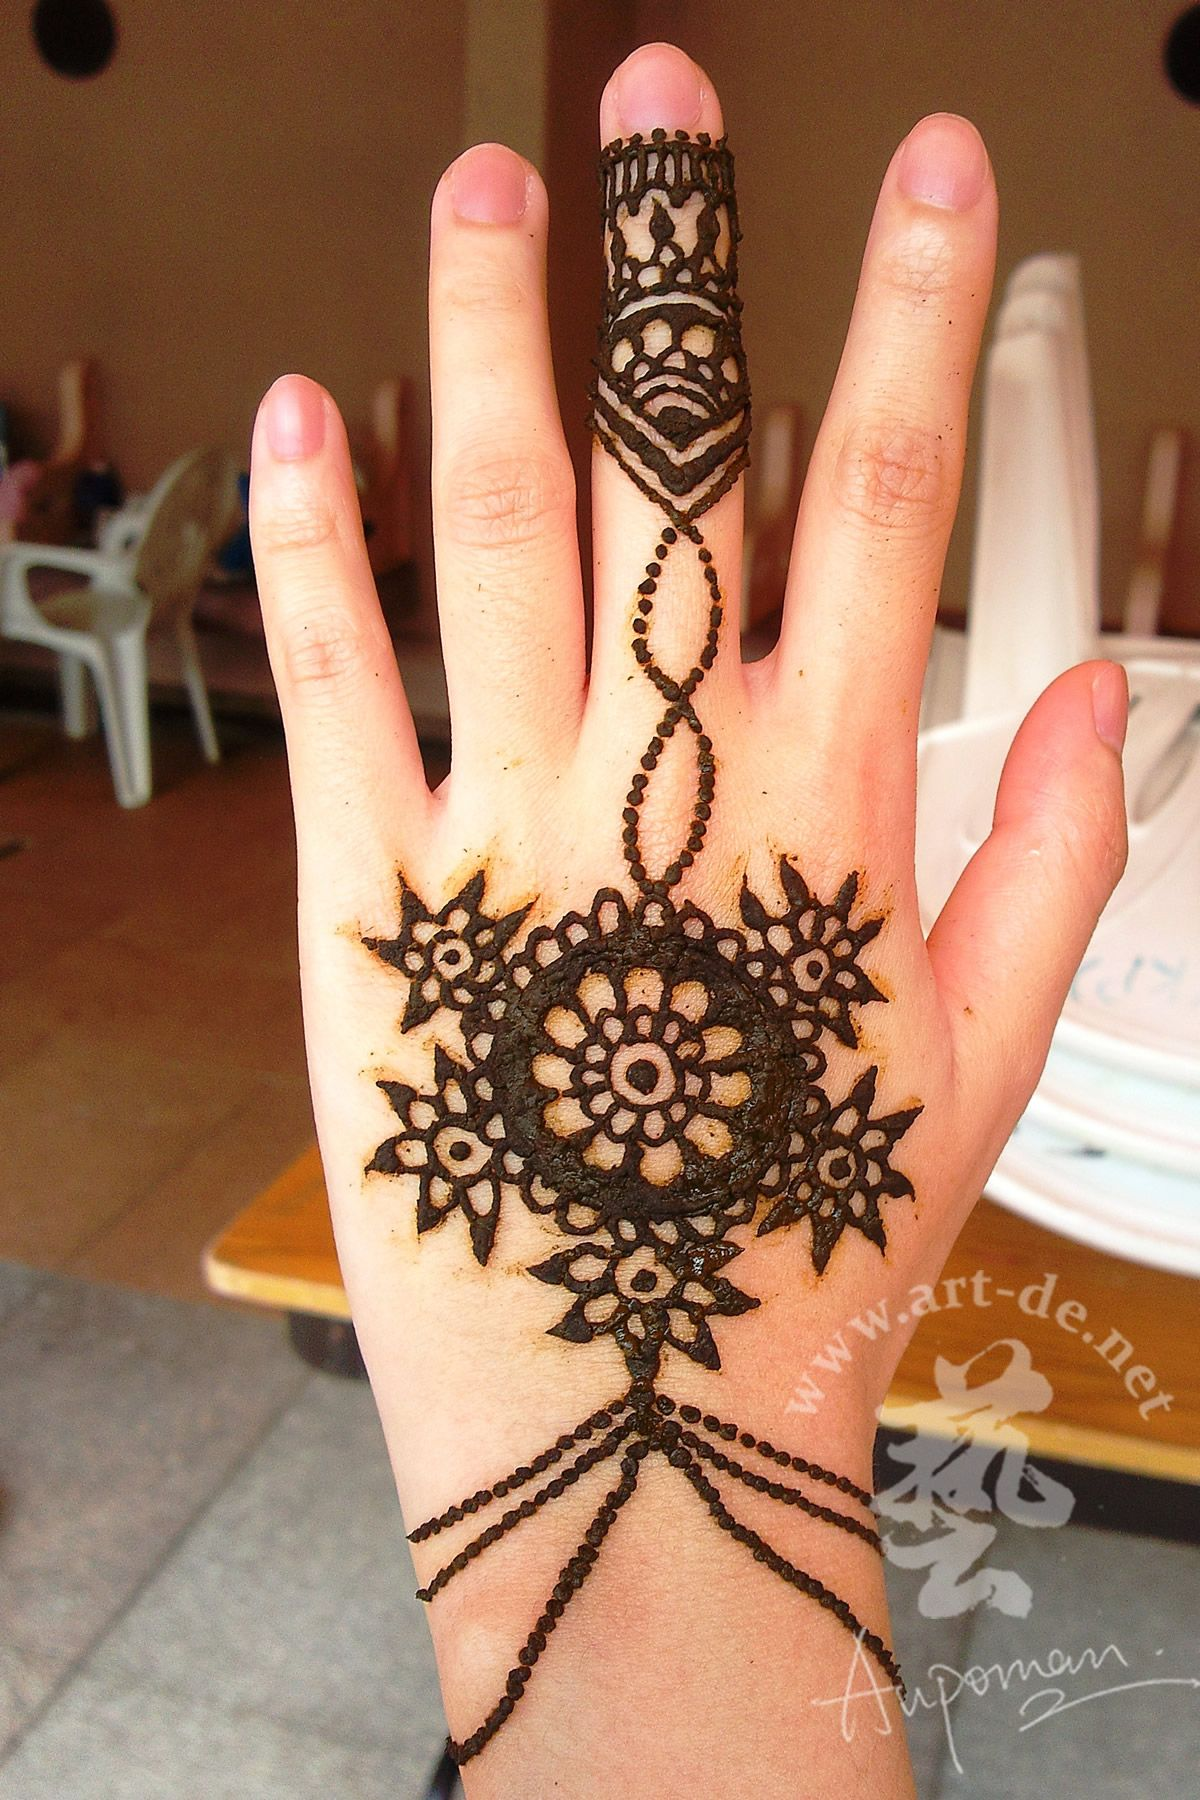 80 crazy and amazing tattoo designs for men and women desiznworld - Hand Henna Tattoo Designs This One S Like An Ornate Bracelet How Cool